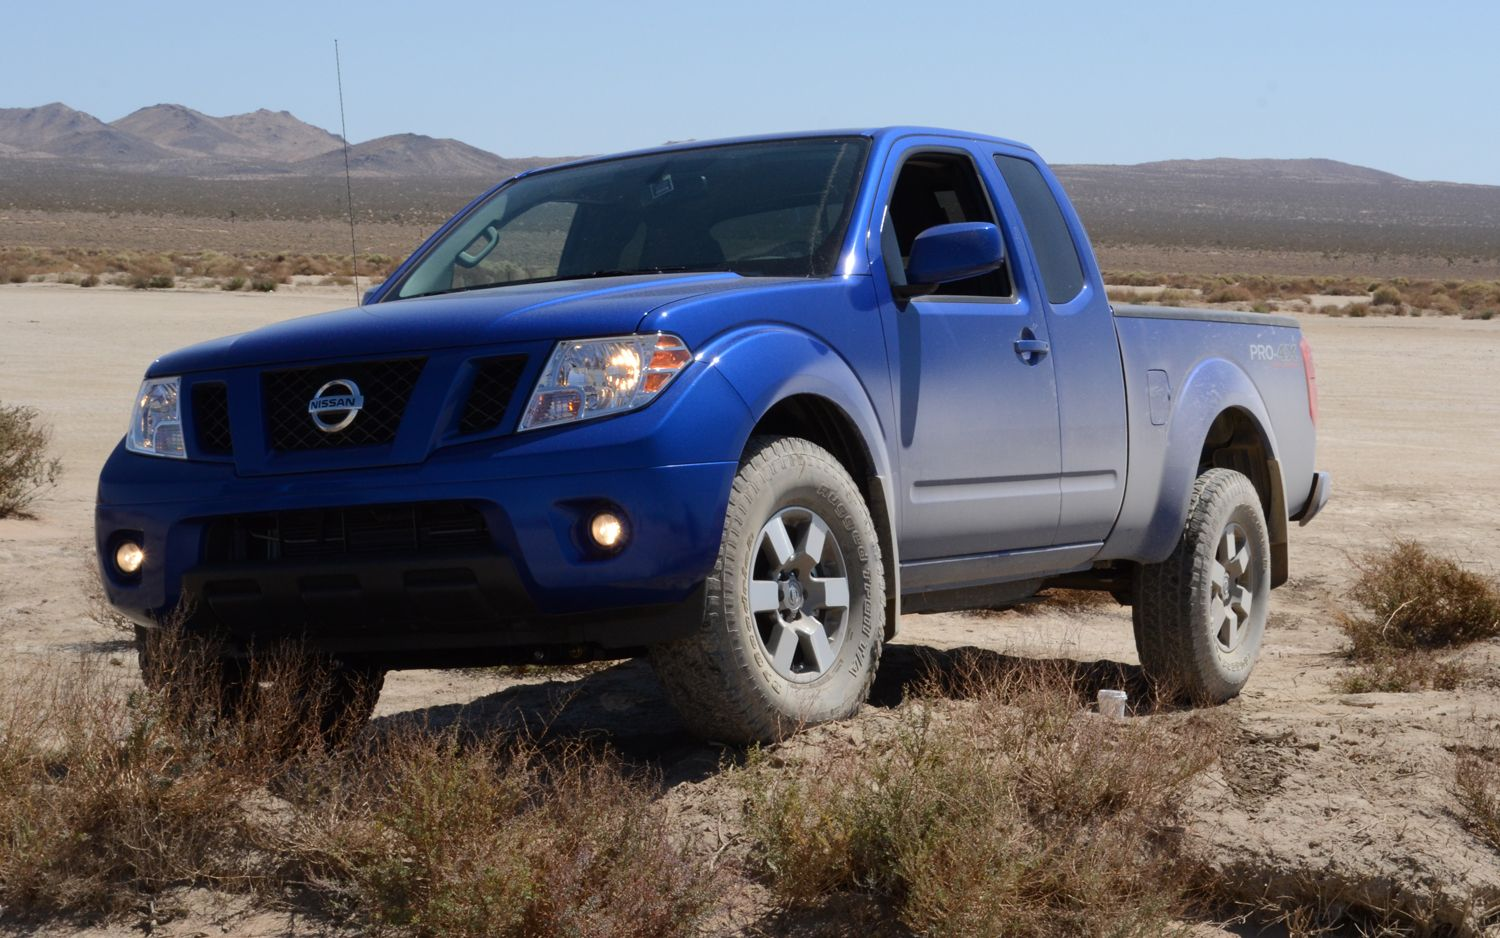 Awesome cool blacked out nissan frontier www awesome cool blacked out nissan frontier imperionissangardengrove frontier pinterest nissan and cars vanachro Gallery